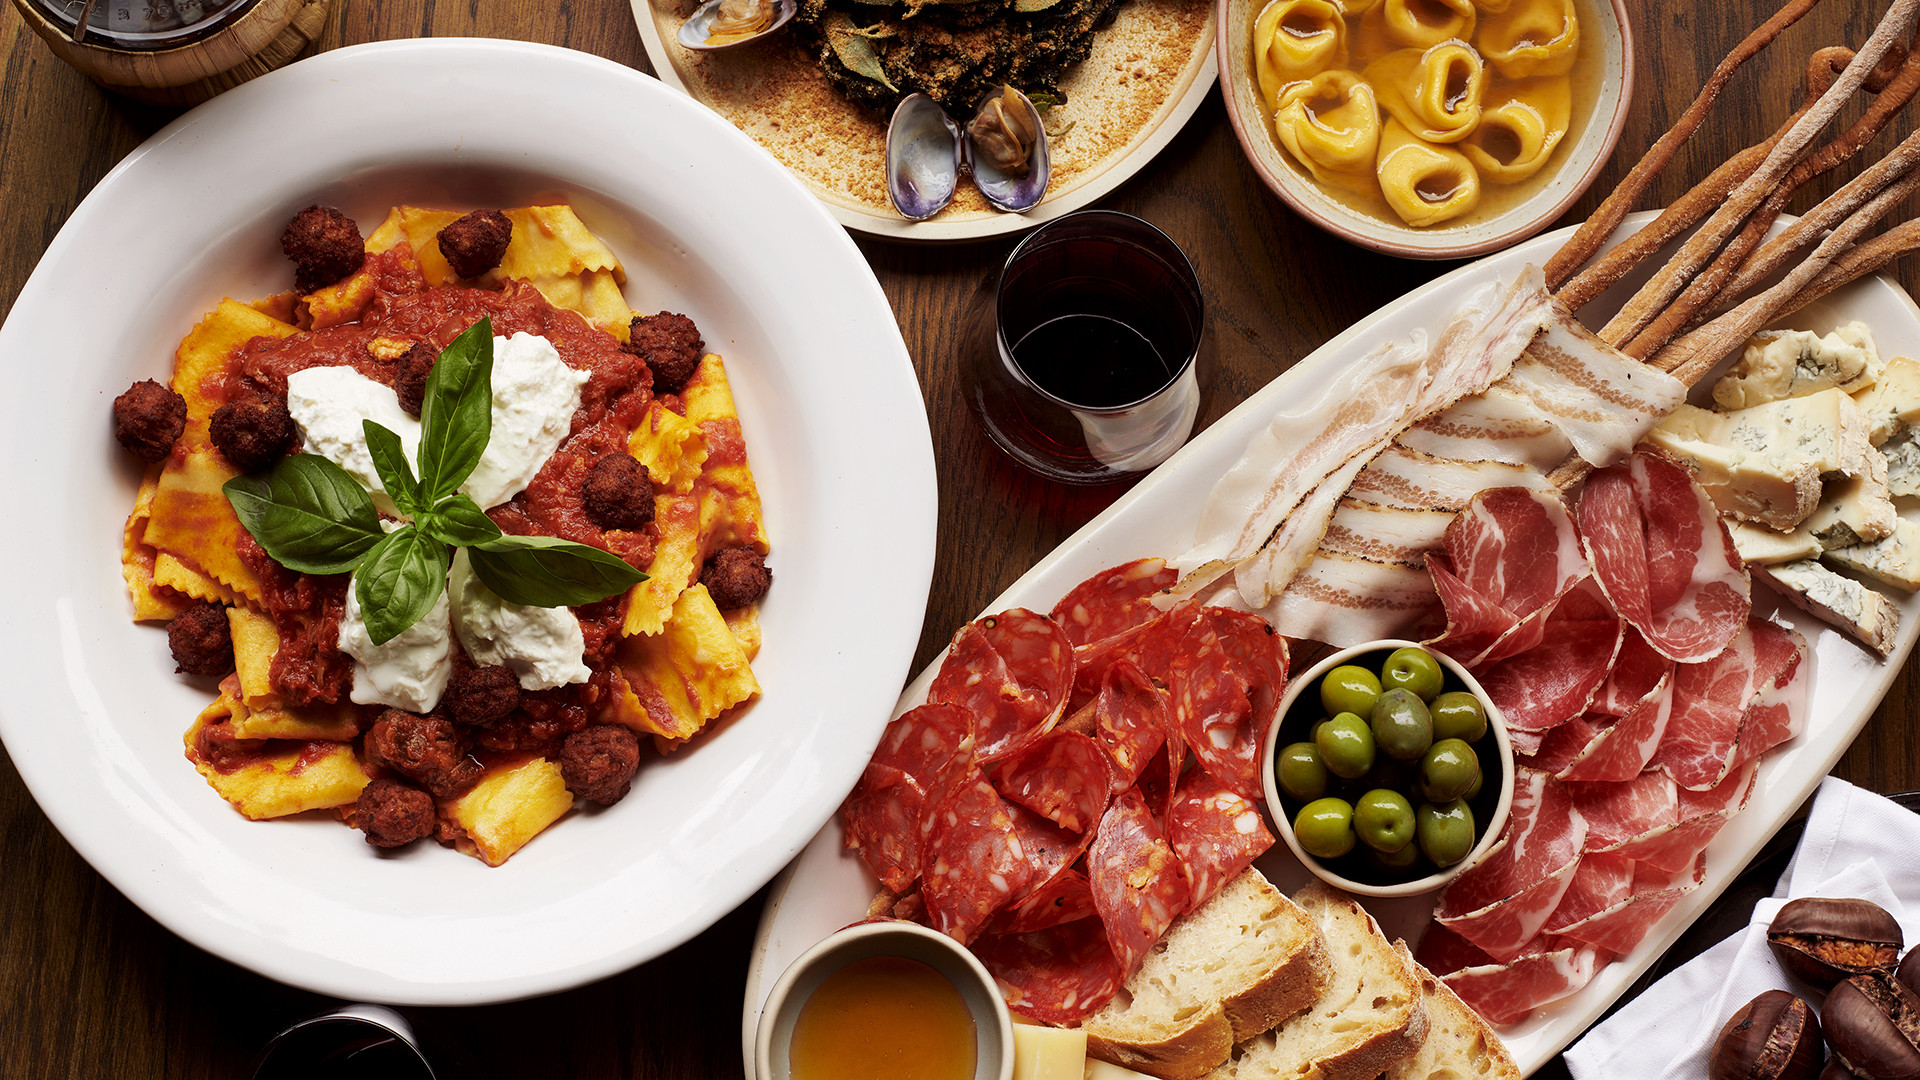 A spread of dishes at Officina 00